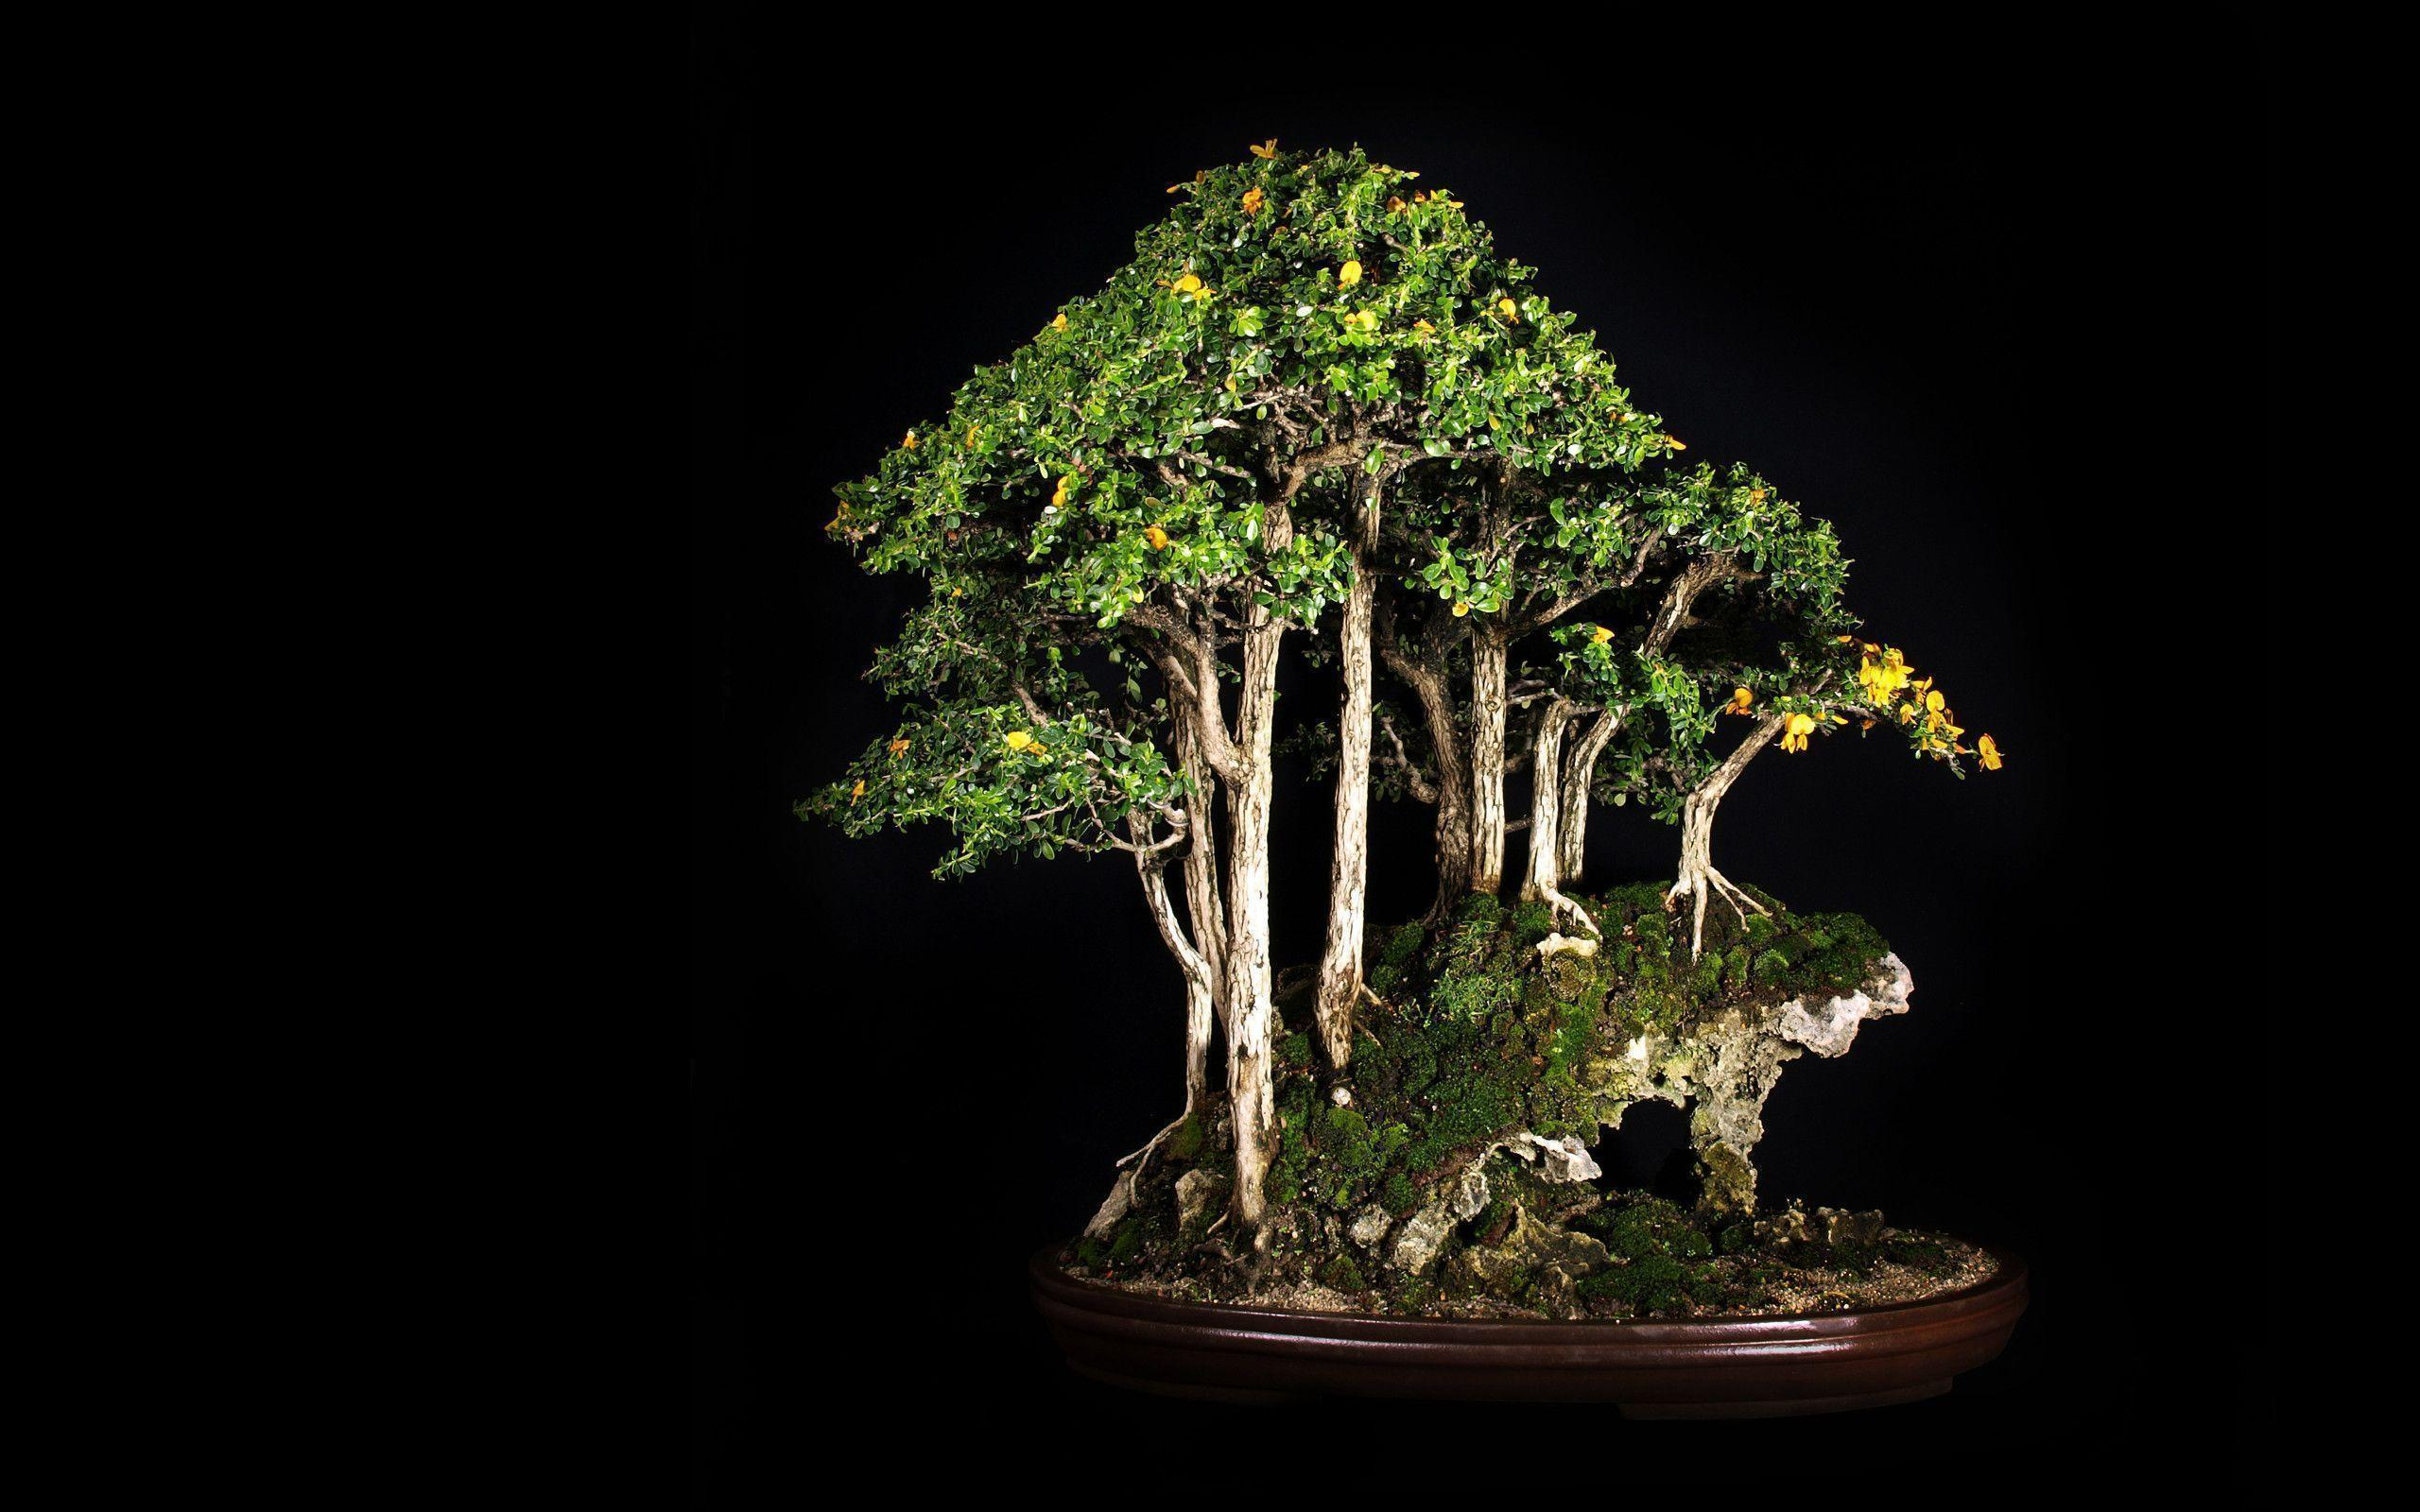 Tree Bonsai Tree Black leaves d wallpaper | 2560x1600 | 67867 ...